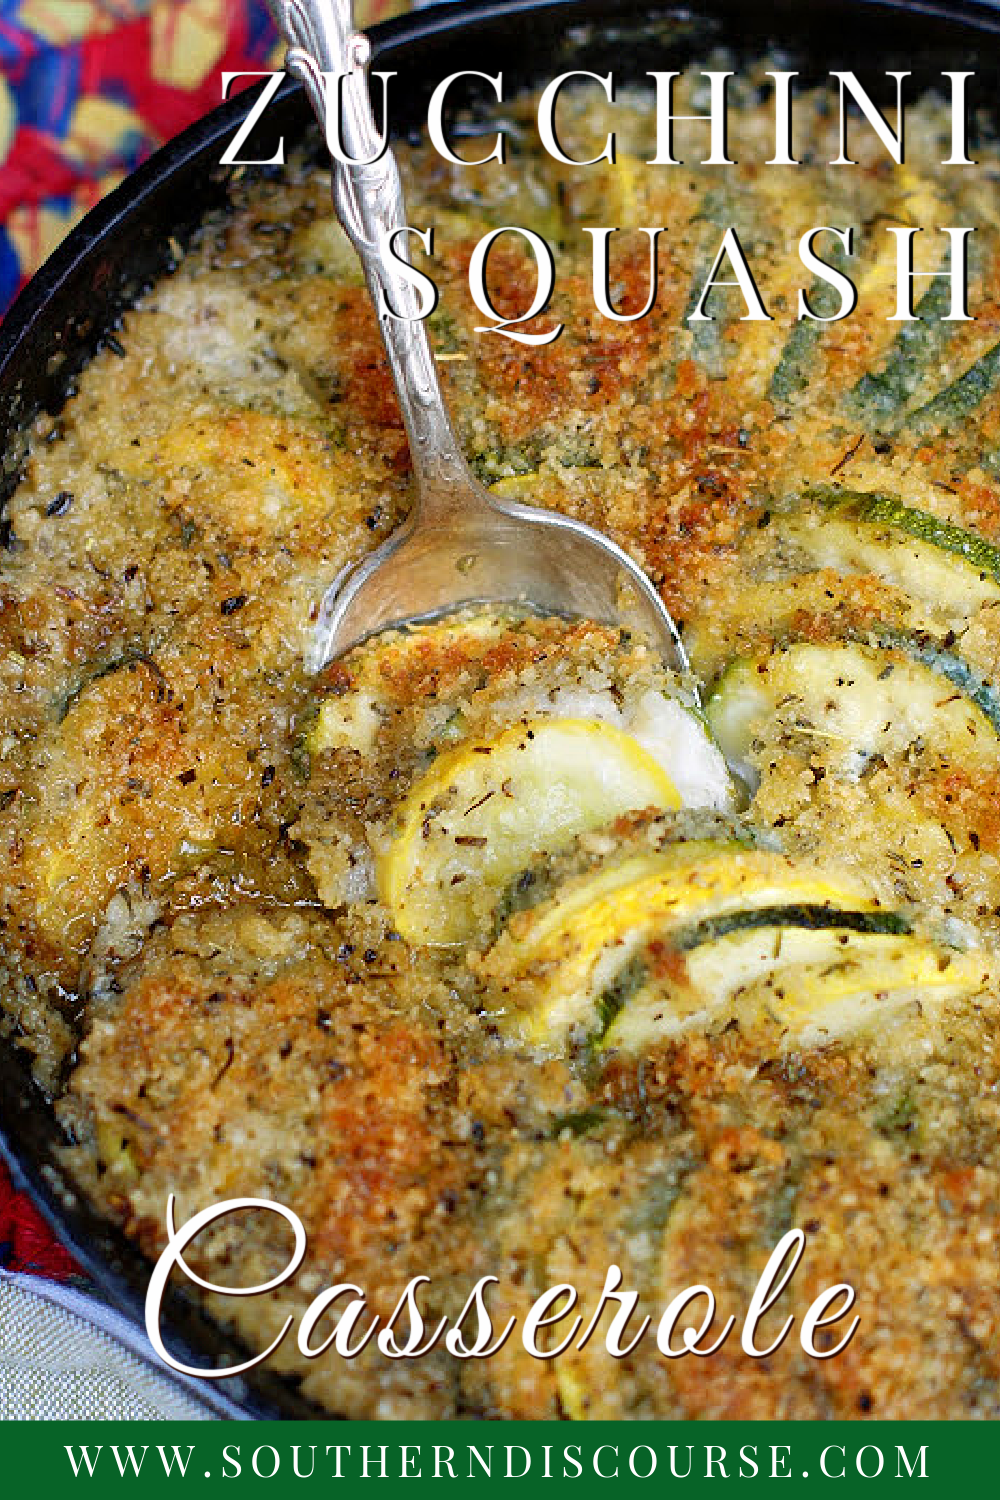 Tender zucchini and yellow squash baked in a creamy, savory sauce of mayo, chicken broth, garlic and spices, then topped with a crisp panko and Parmesan topping create a delicious side dish that's perfect for everything from holidays to cookouts! Southern Zucchini Squash Casserole